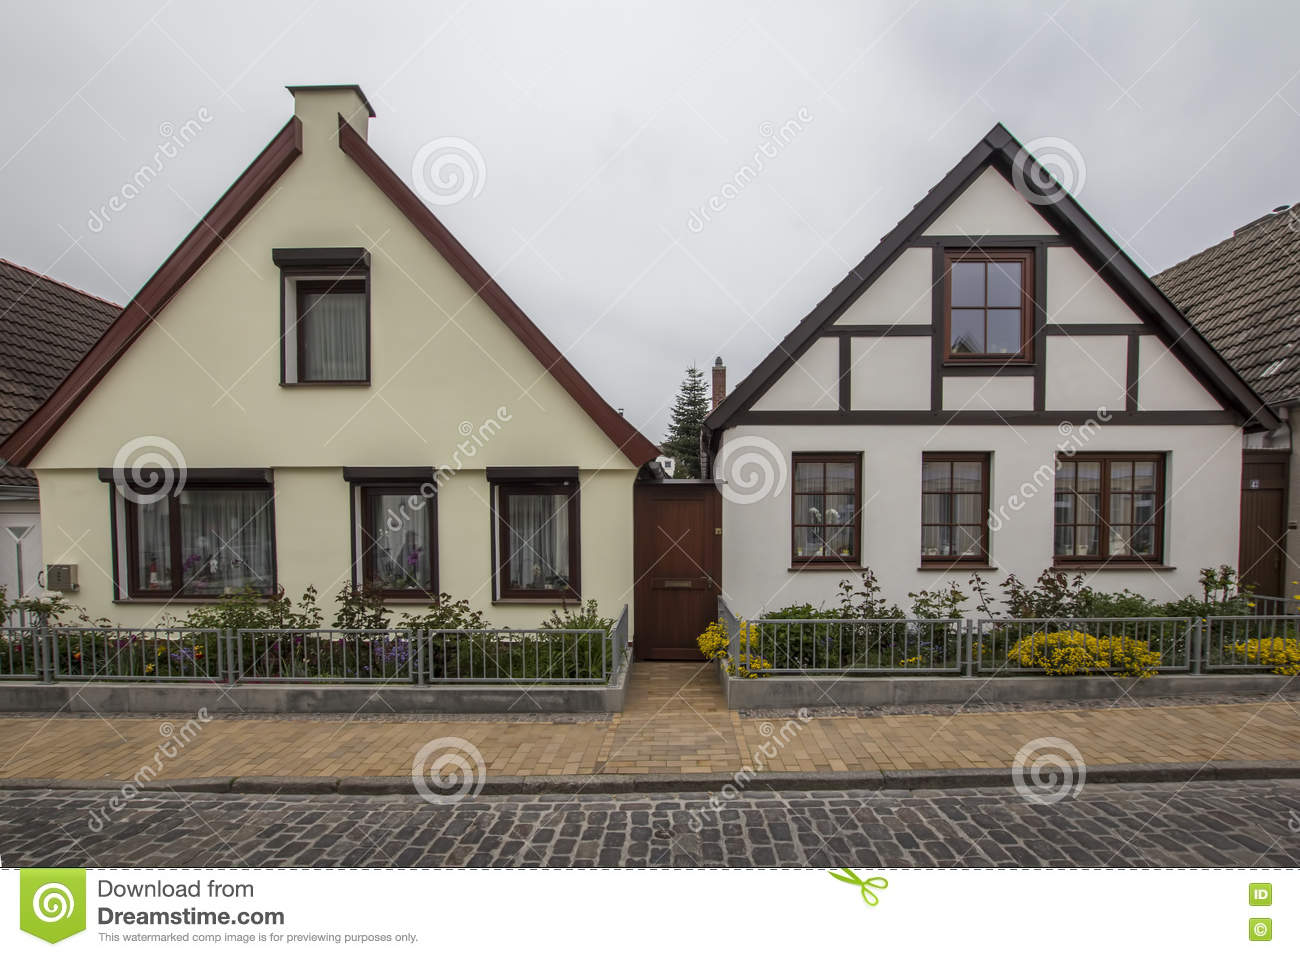 Two simple two story houses in germany stock image image Simple two story house